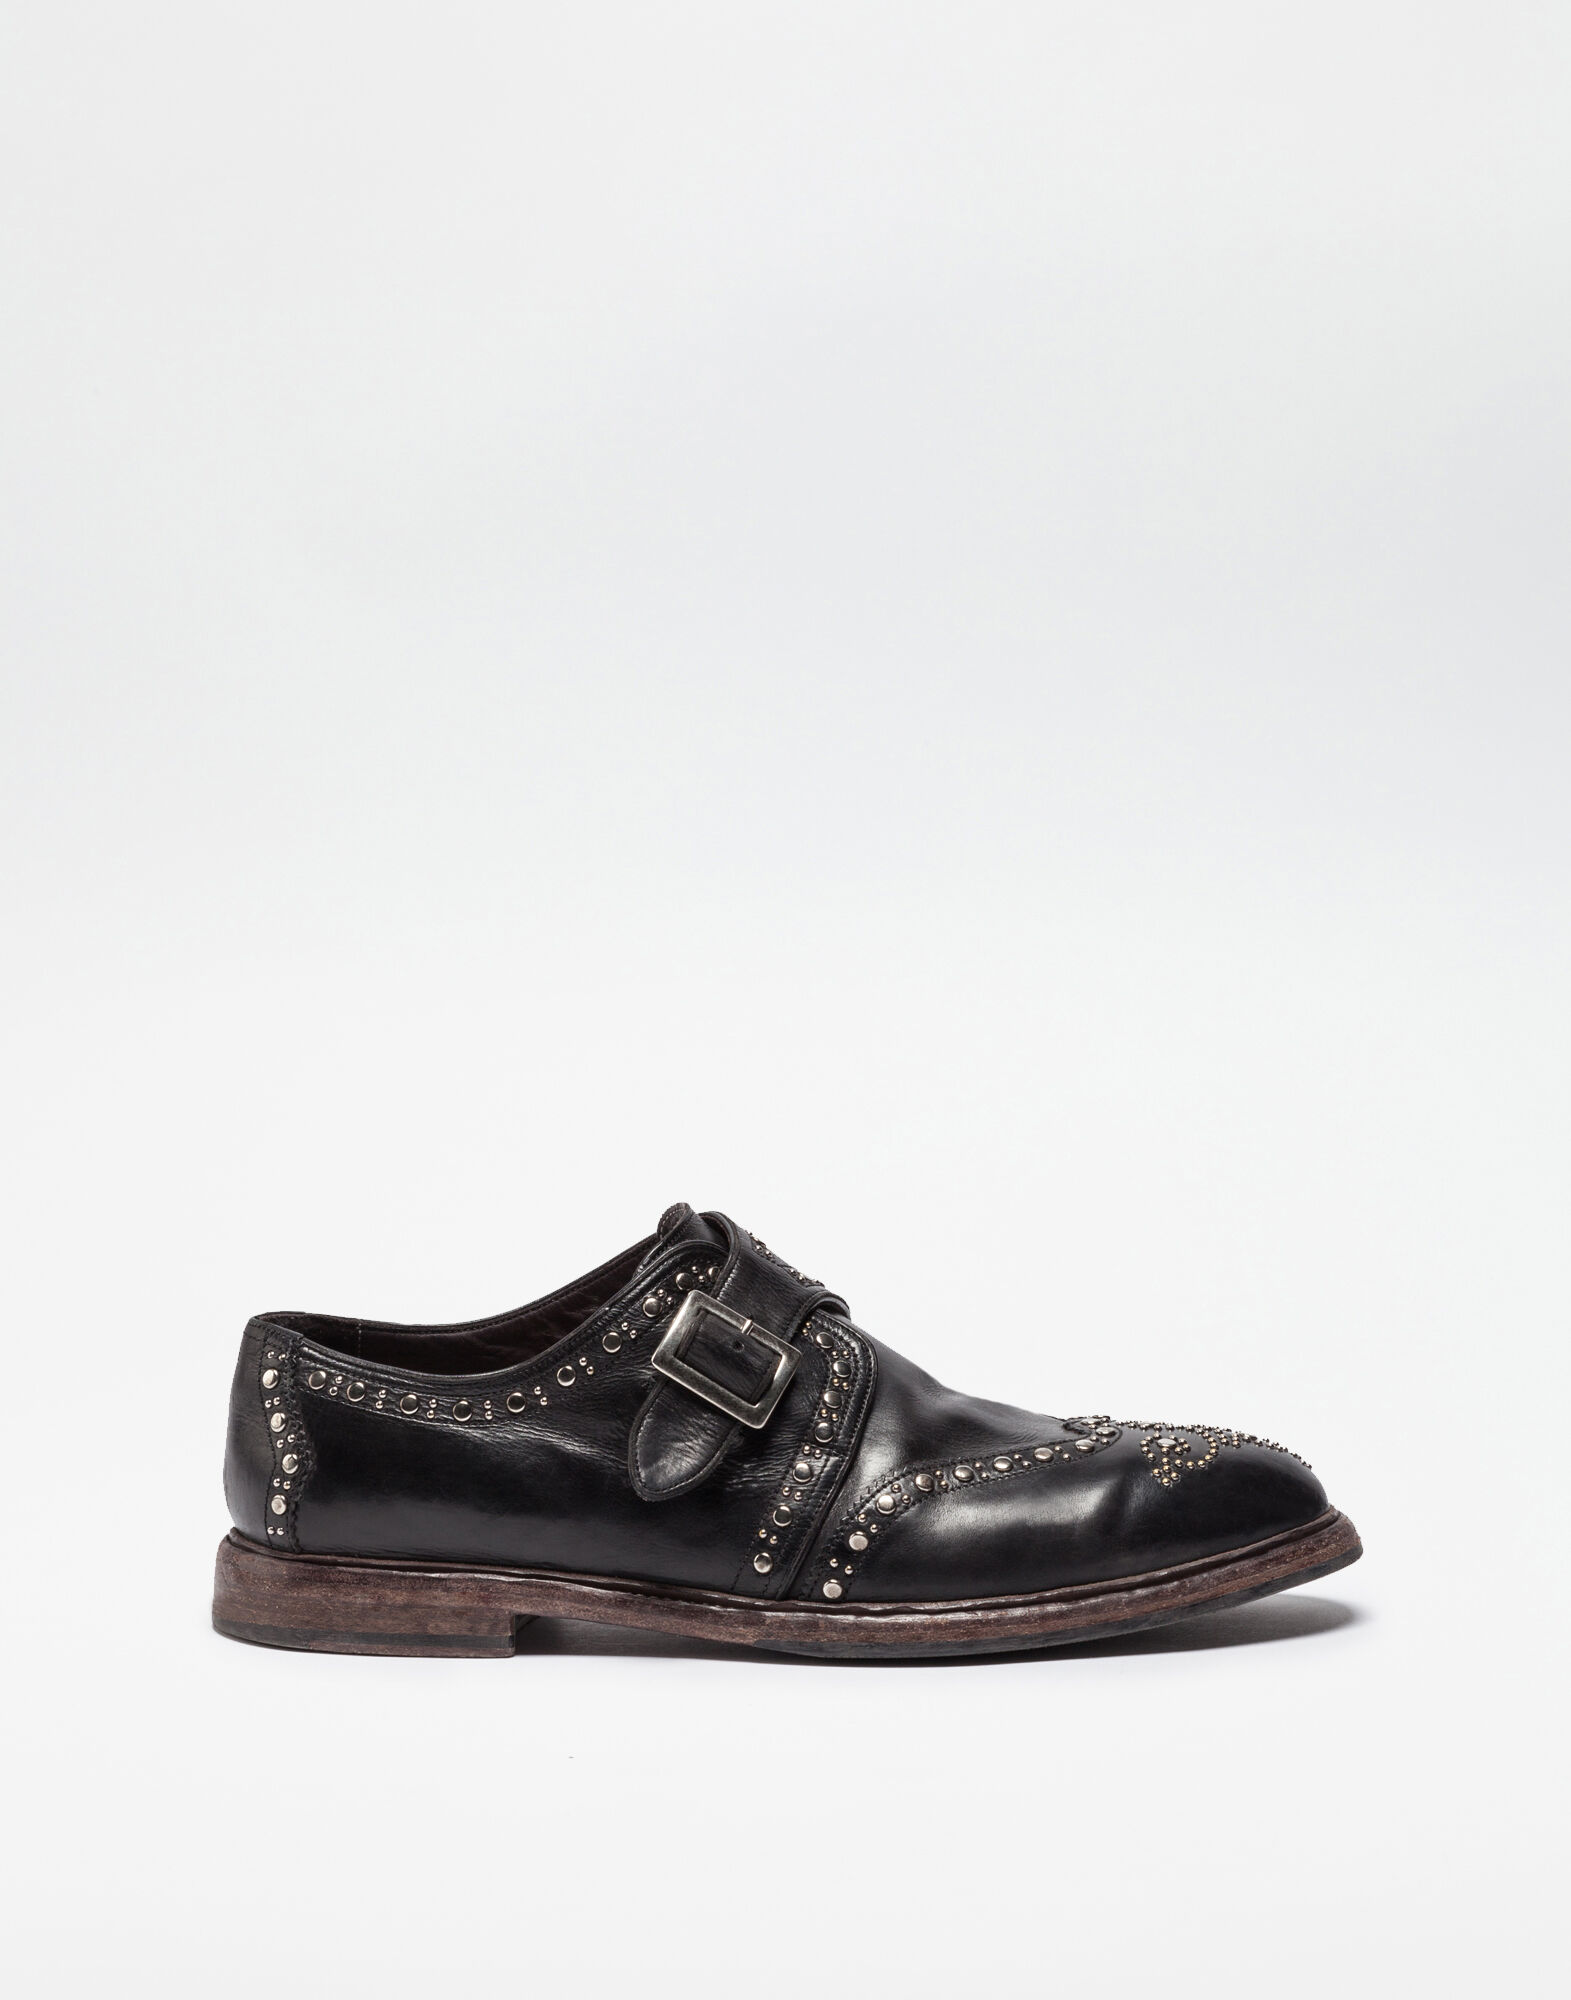 COLORED DIP-COATED LEATHER MONK STRAP SHOE